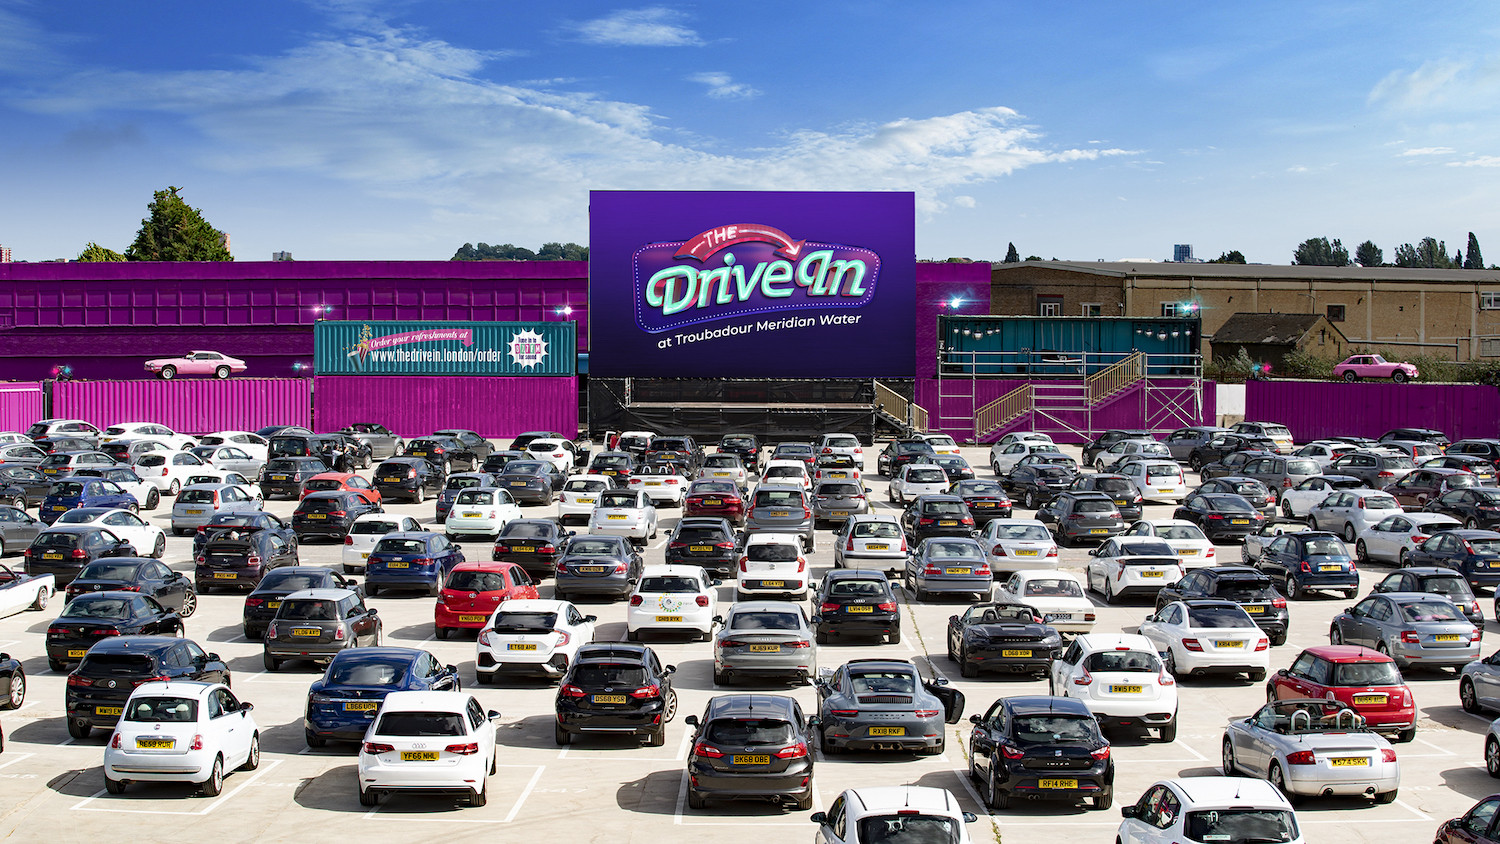 The Drive In – London's Contact Free Cinema is reopening on 12th April 2021